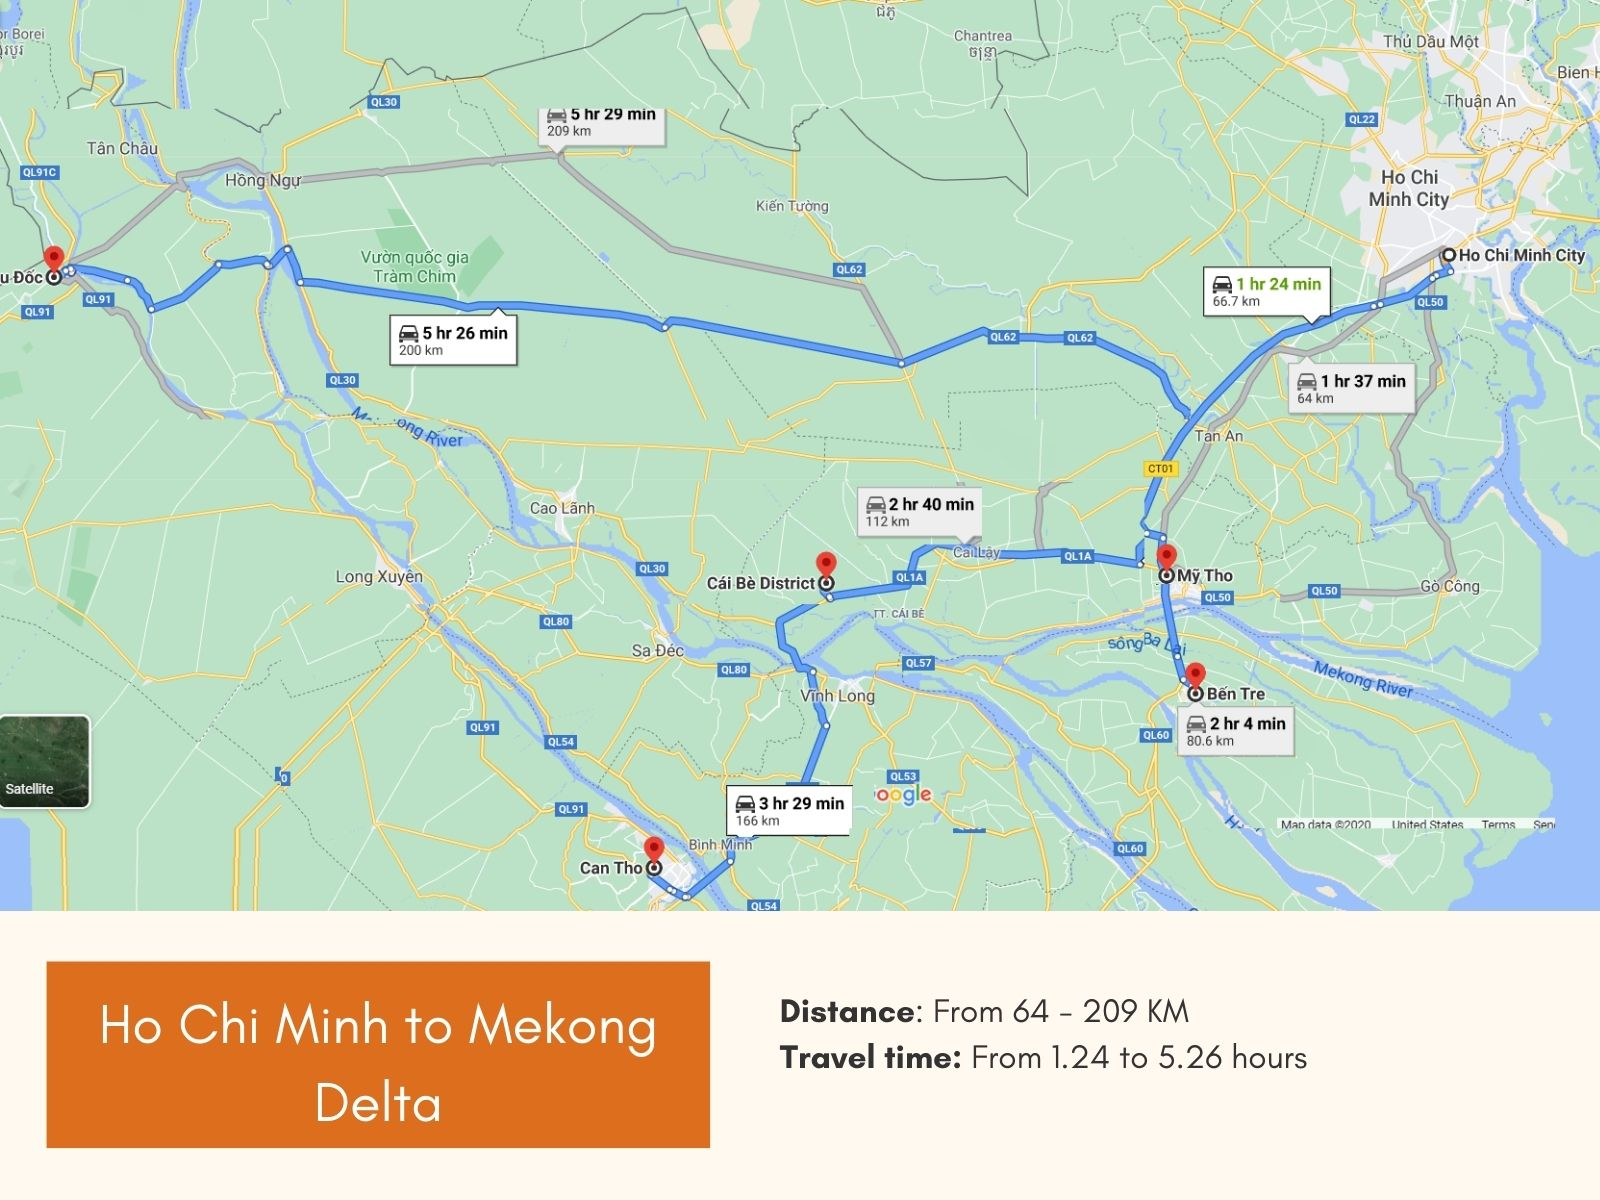 Ho Chi Minh to Mekong delta route maps